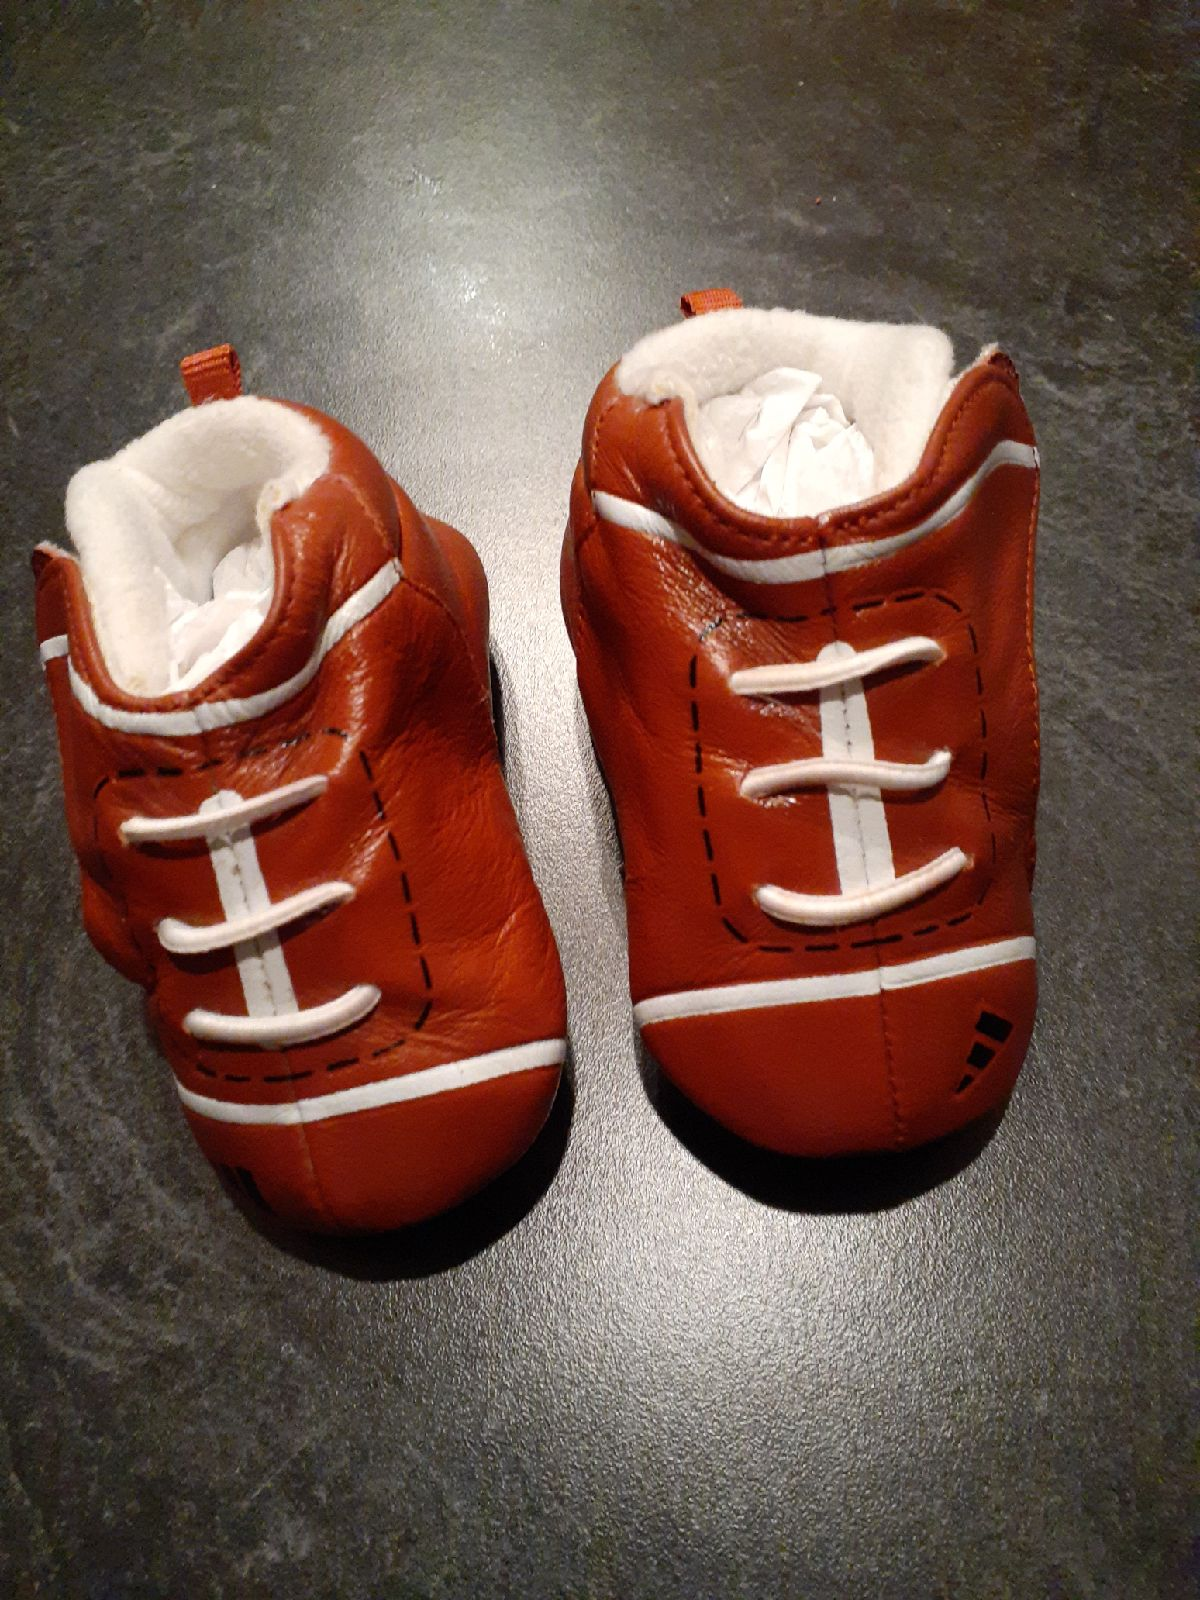 297. Baby football shoes